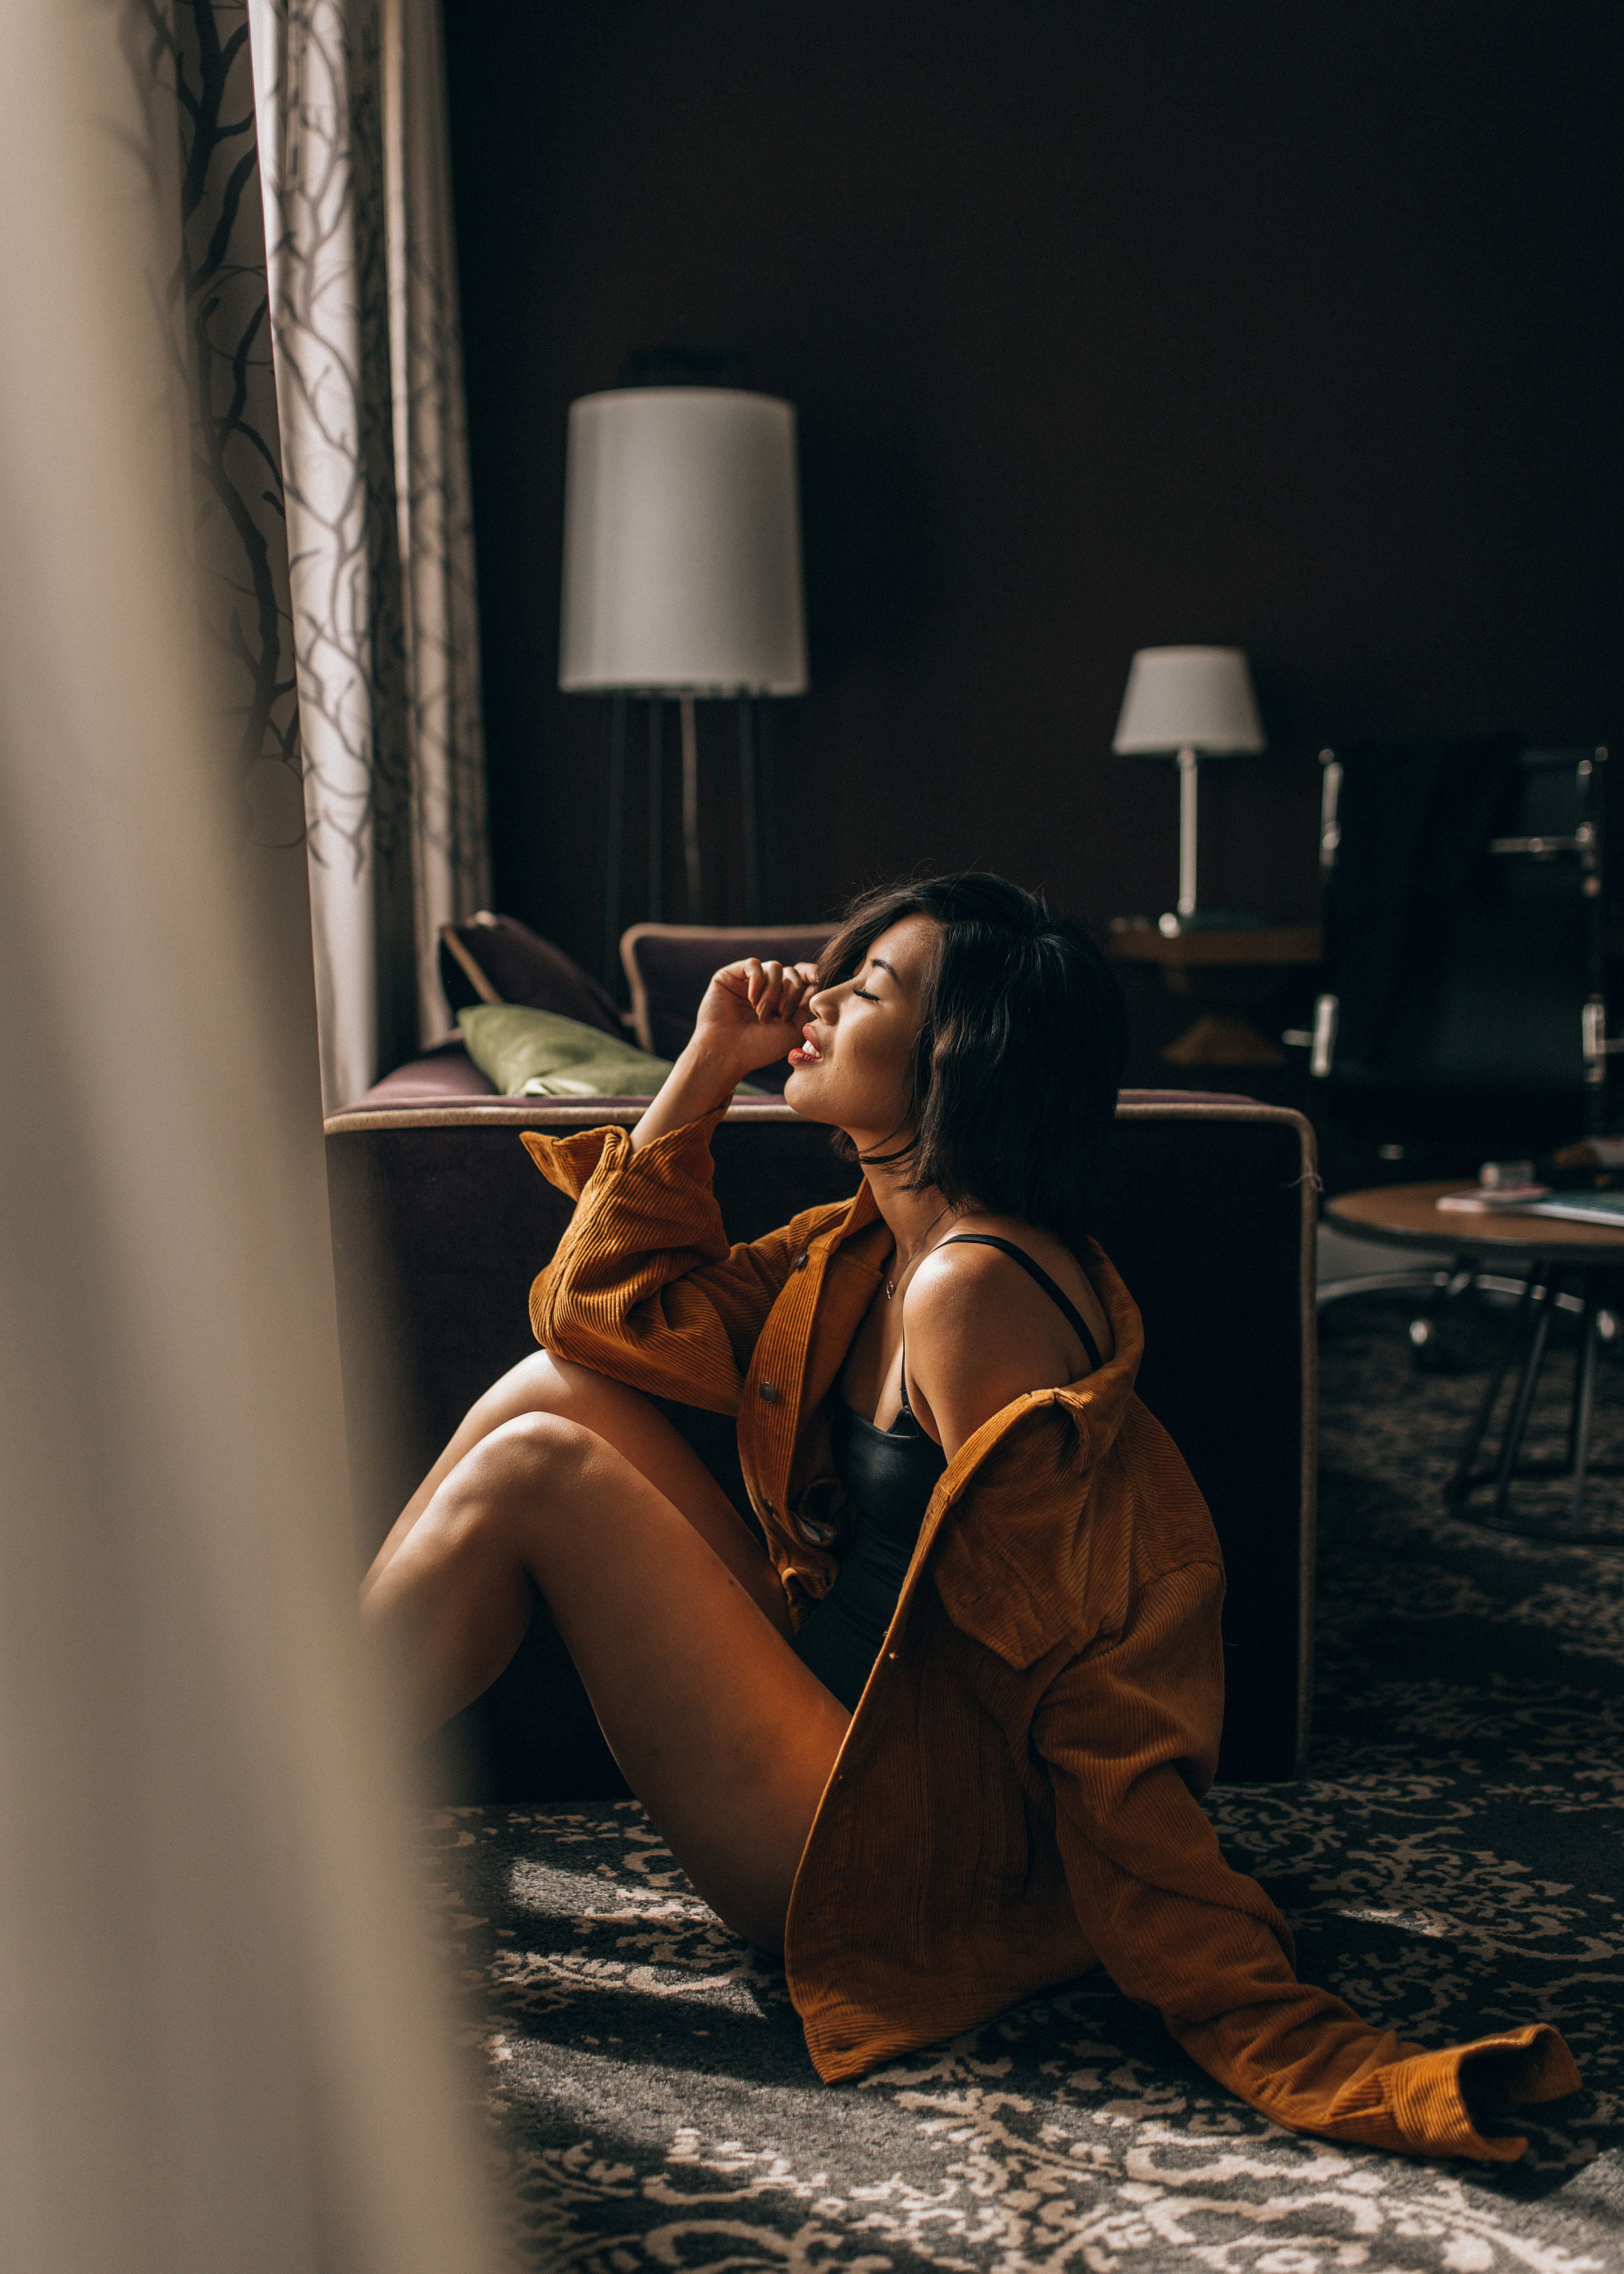 hotel-vintage-seattle-by-lisa-linh